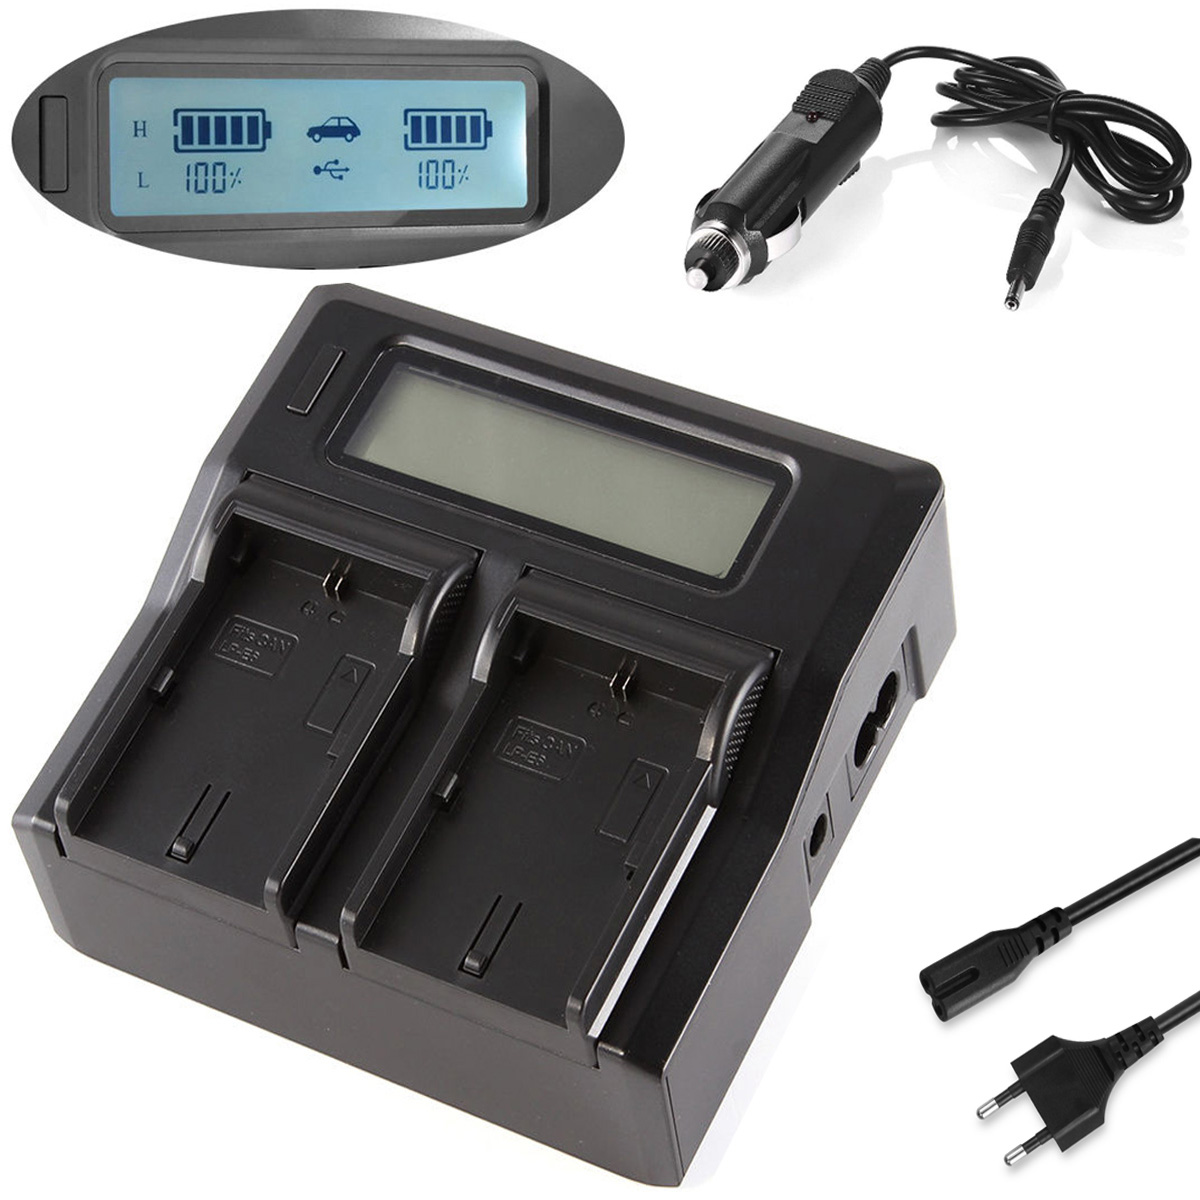 LCD Quick Battery Charger for Sony HXR MC1500,MC1500P,MC1500E, MC2000, MC2000E,MC2000U, MC2000N, <font><b>MC2500</b></font>, MC2500E AVCHD Camcorder image